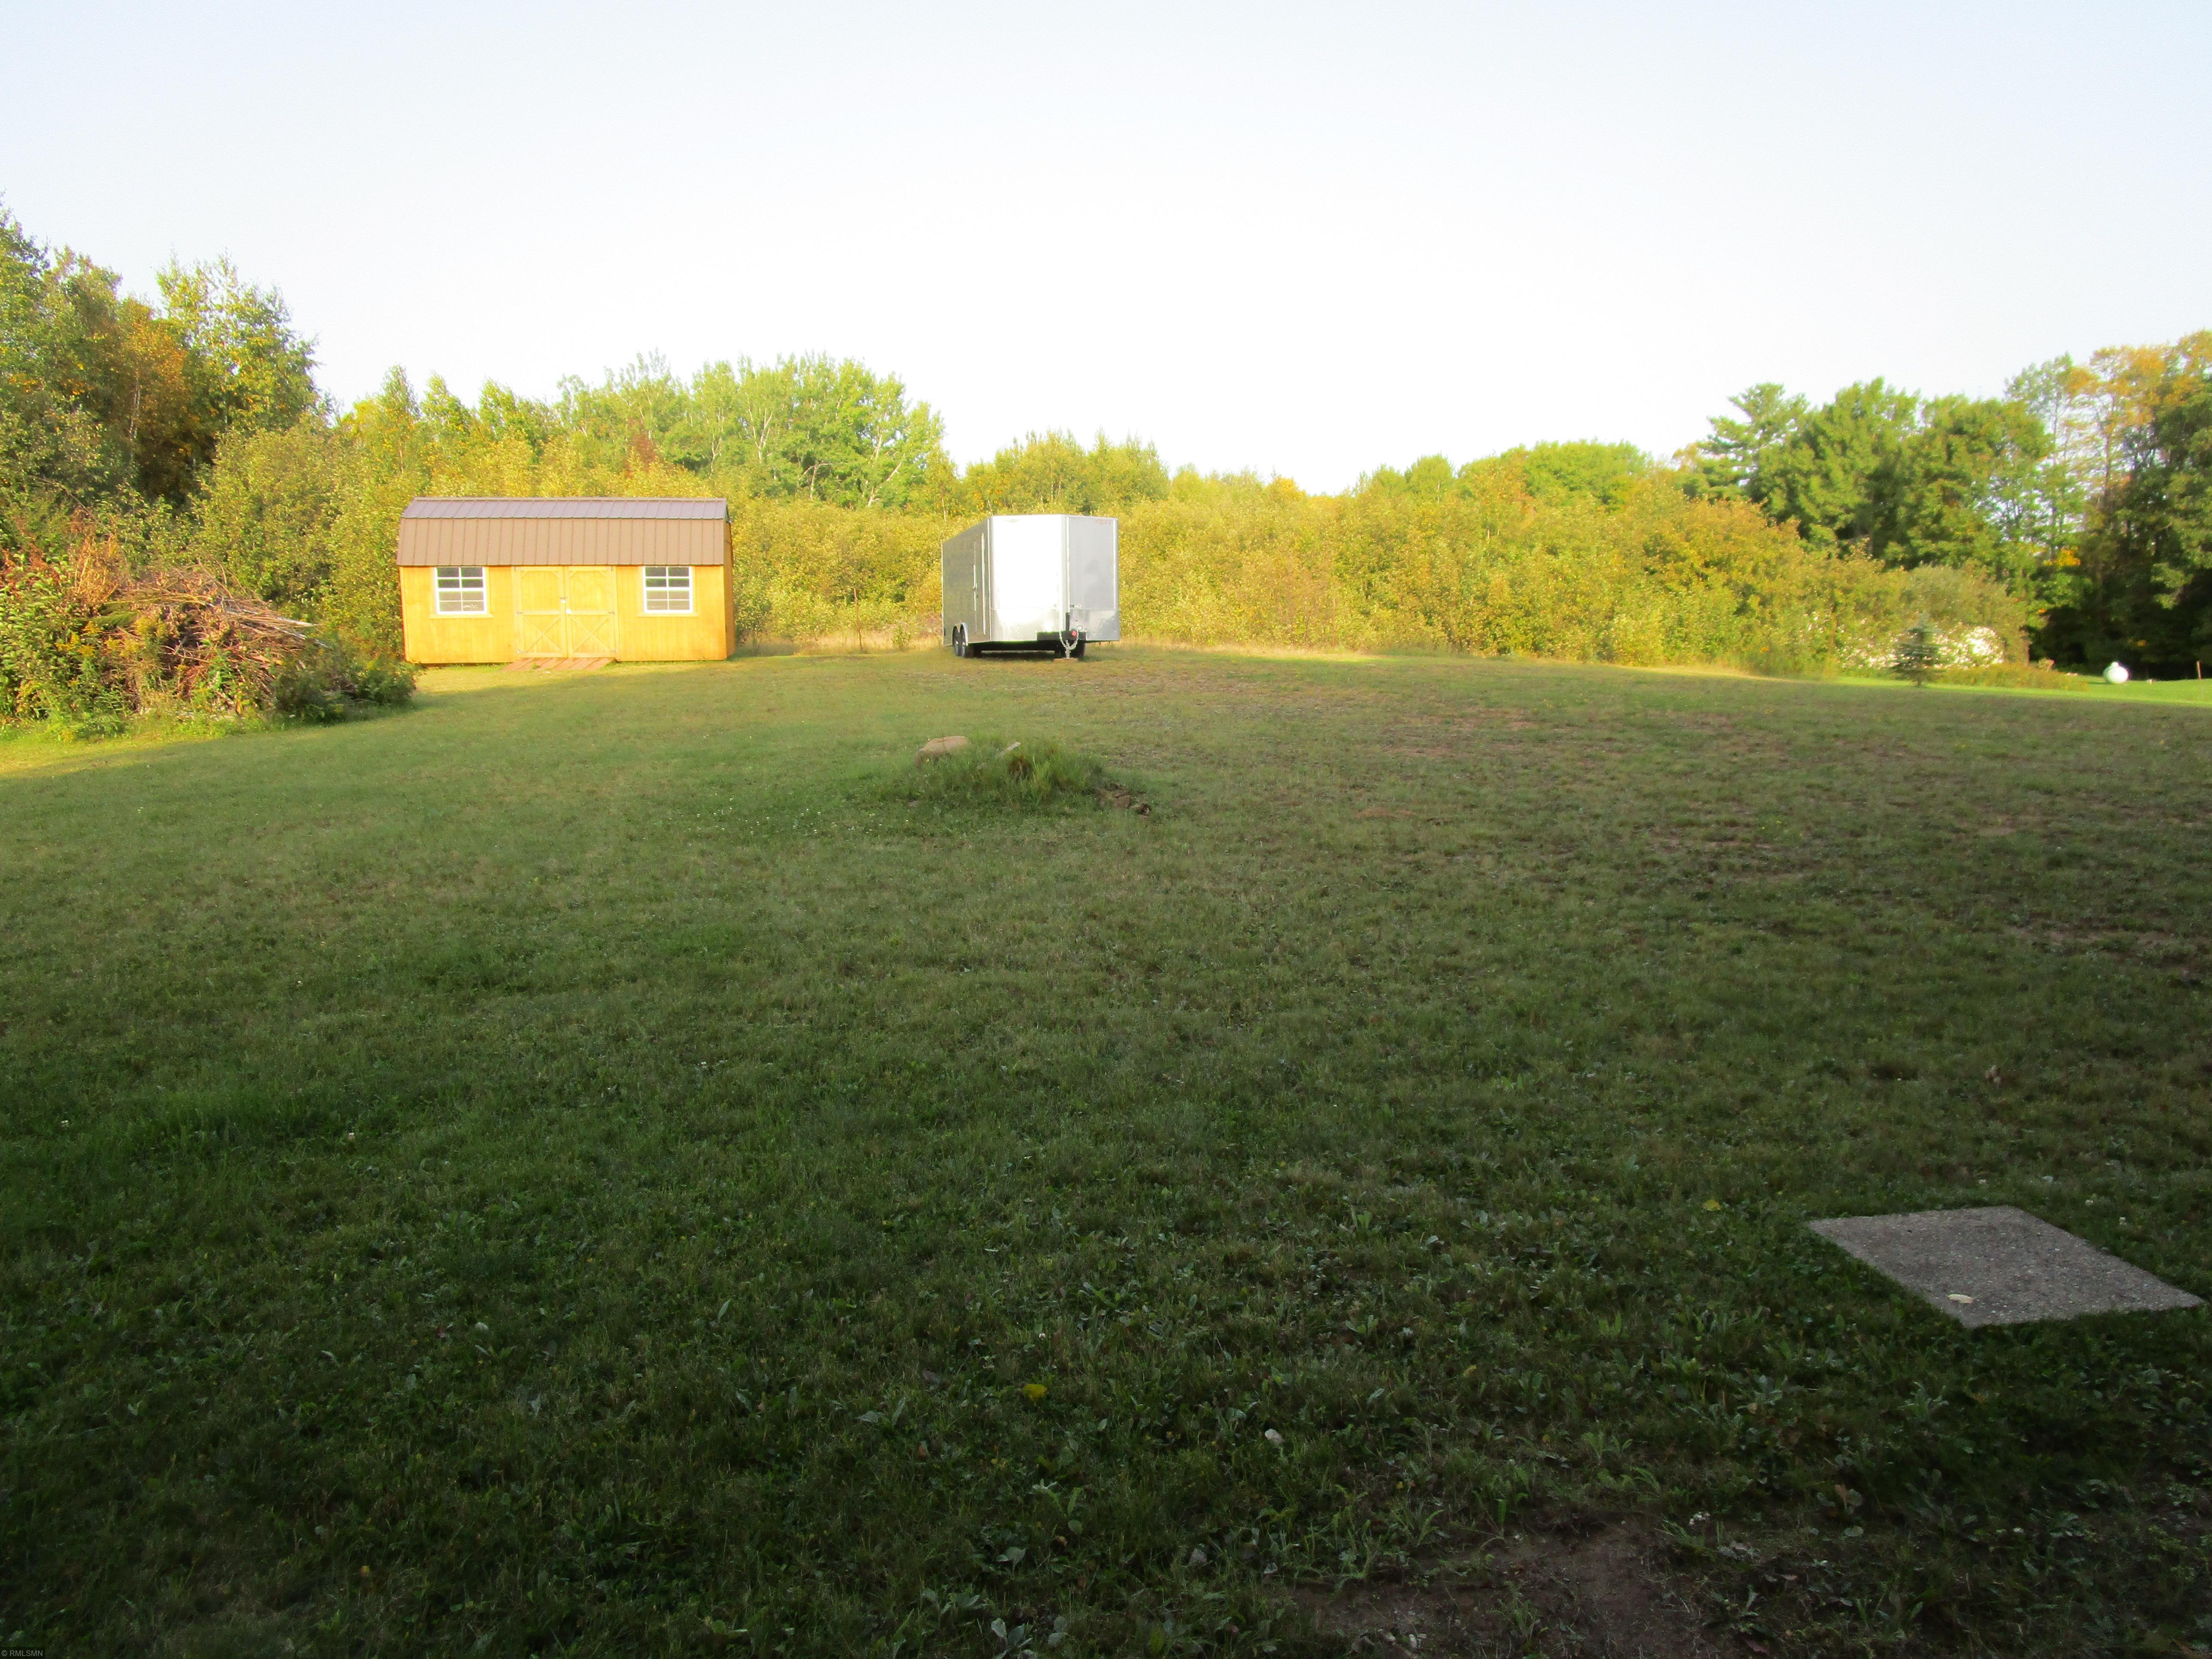 TBD 298th Lane Property Photo - Farm Island Twp, MN real estate listing